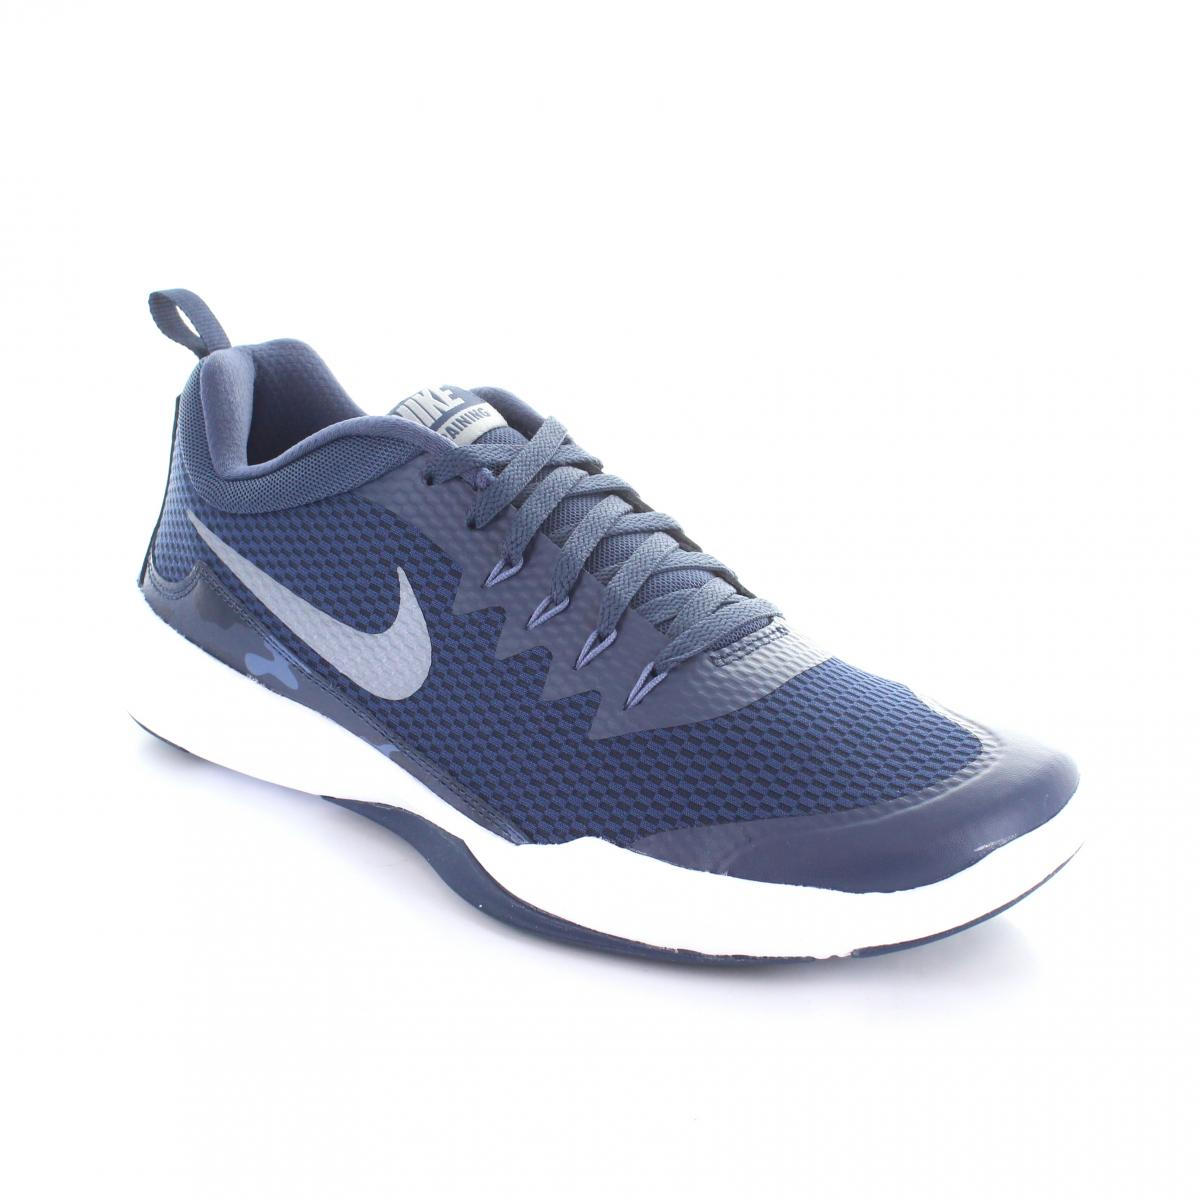 more photos f02ec cfba1 Tenis para Hombre Nike 924206-401 Color Azul